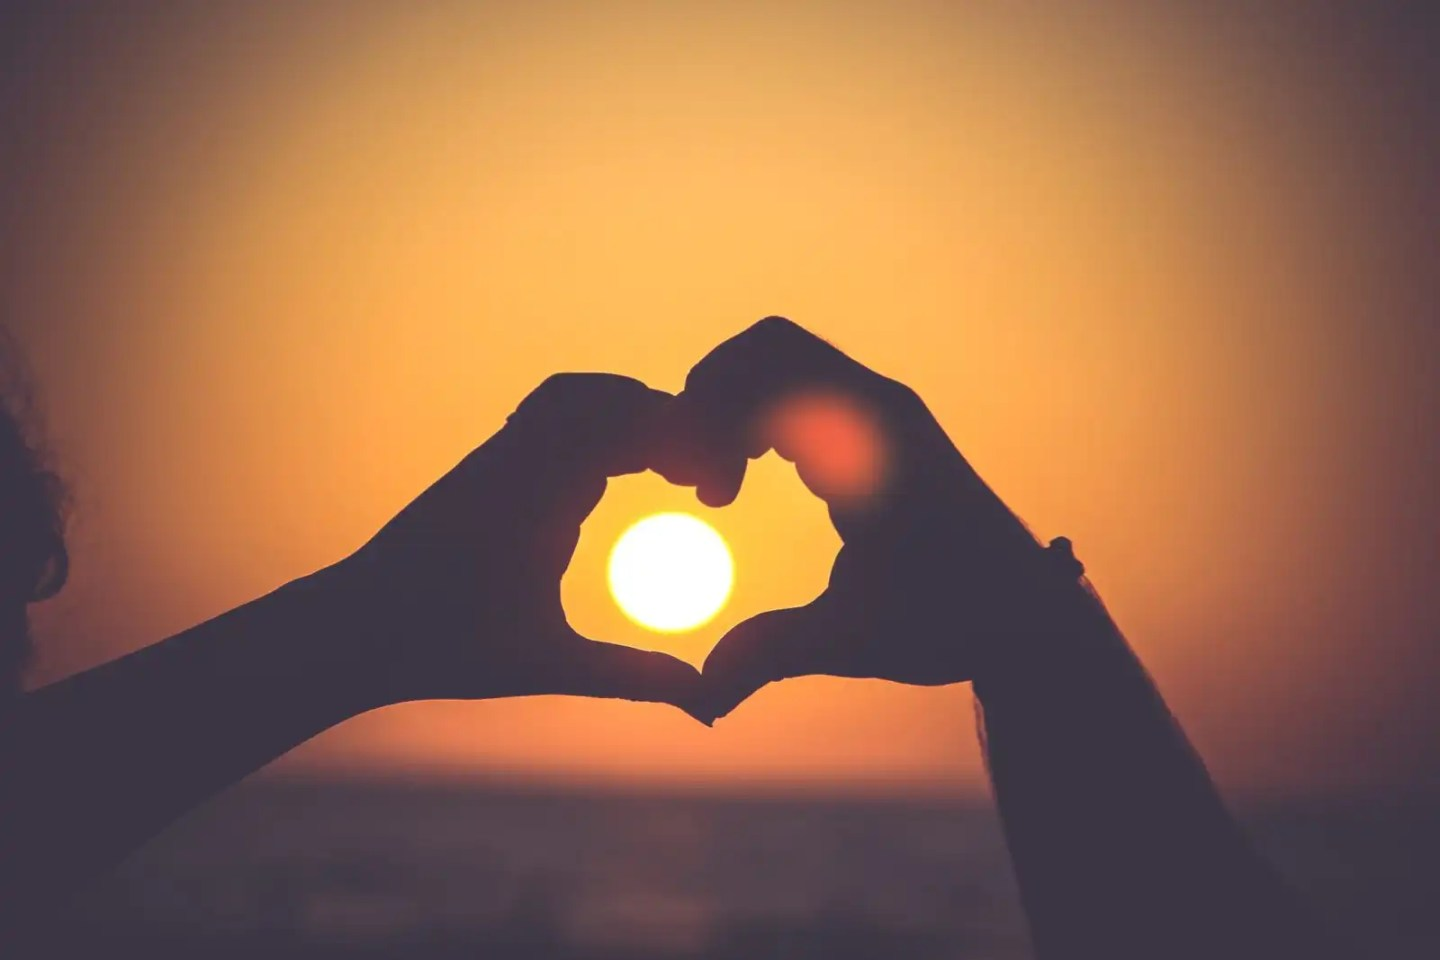 Love Hashtags - Picture of hands making heart around the sun